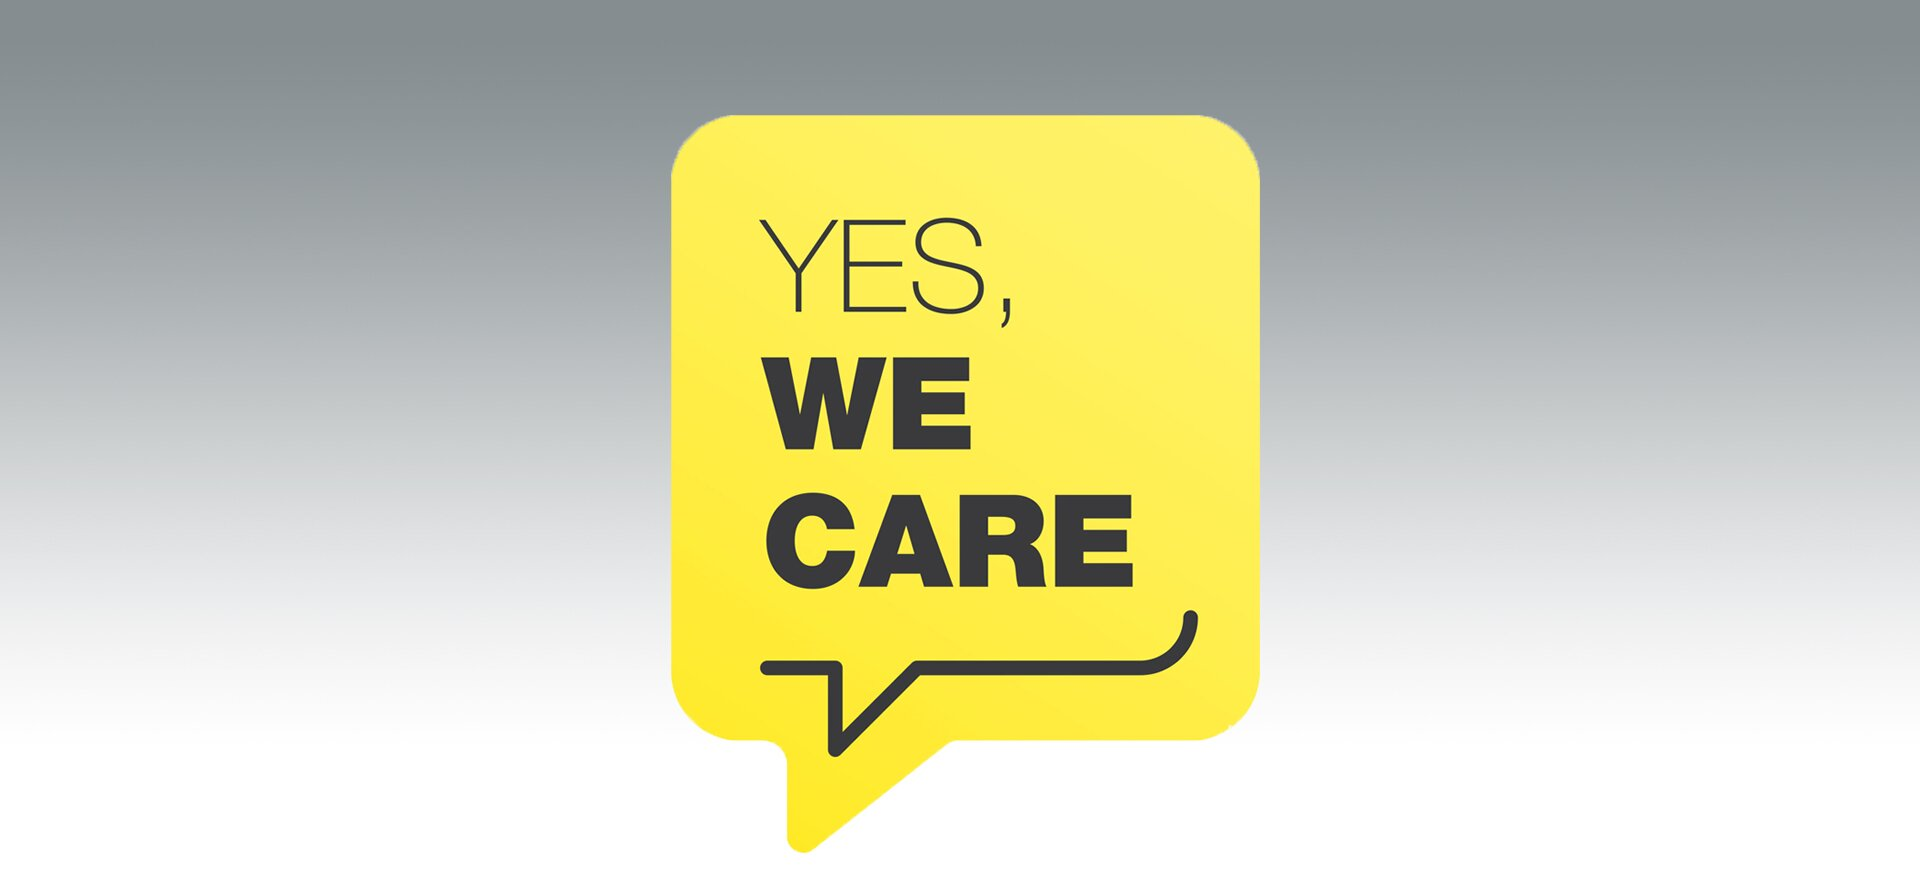 Unsere Initiative Yes, we care